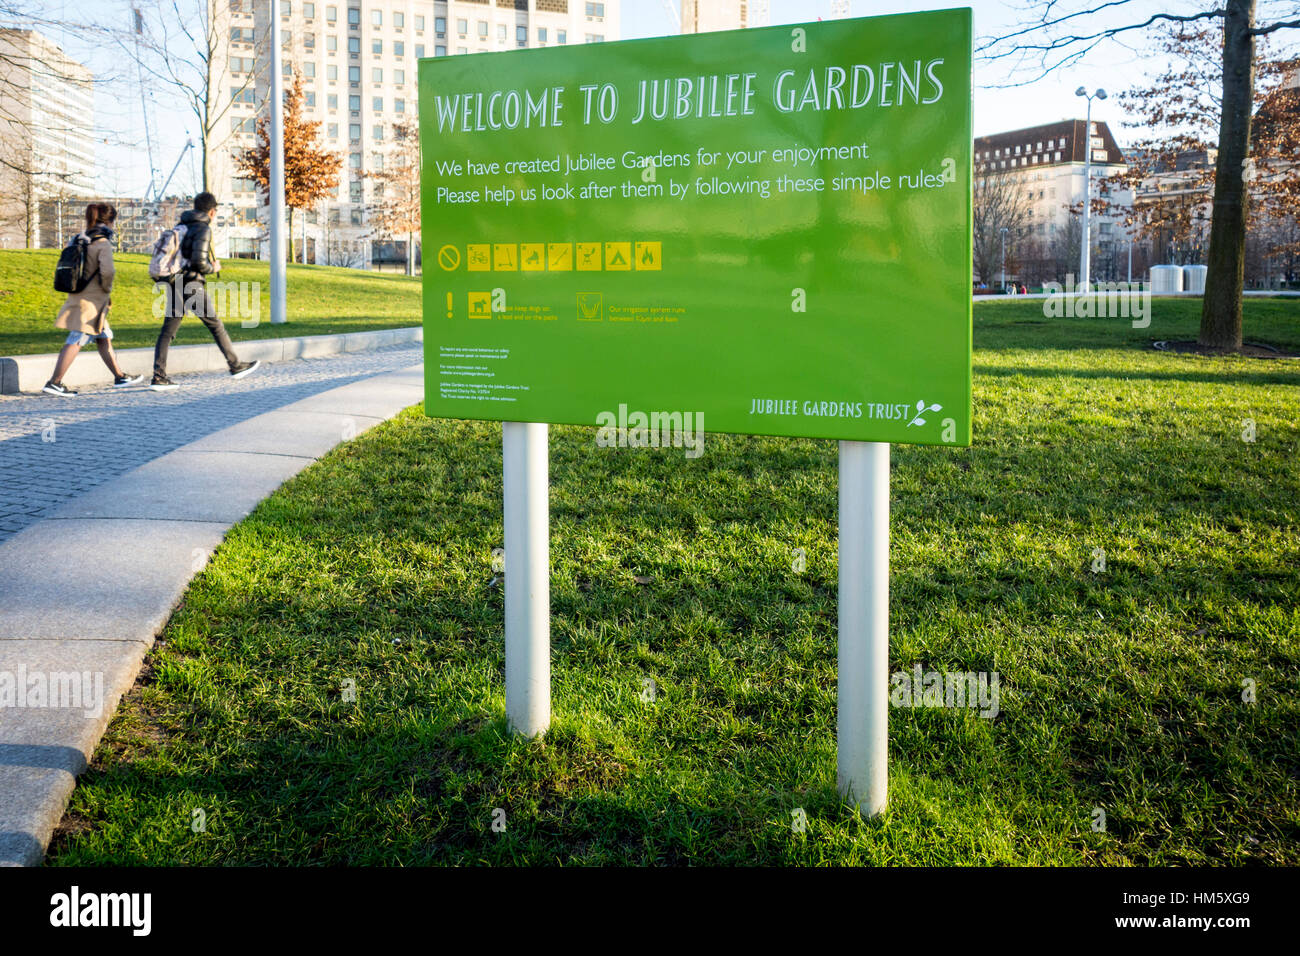 Sign at the Jubilee Gardens, Southbank, London, UK - Stock Image